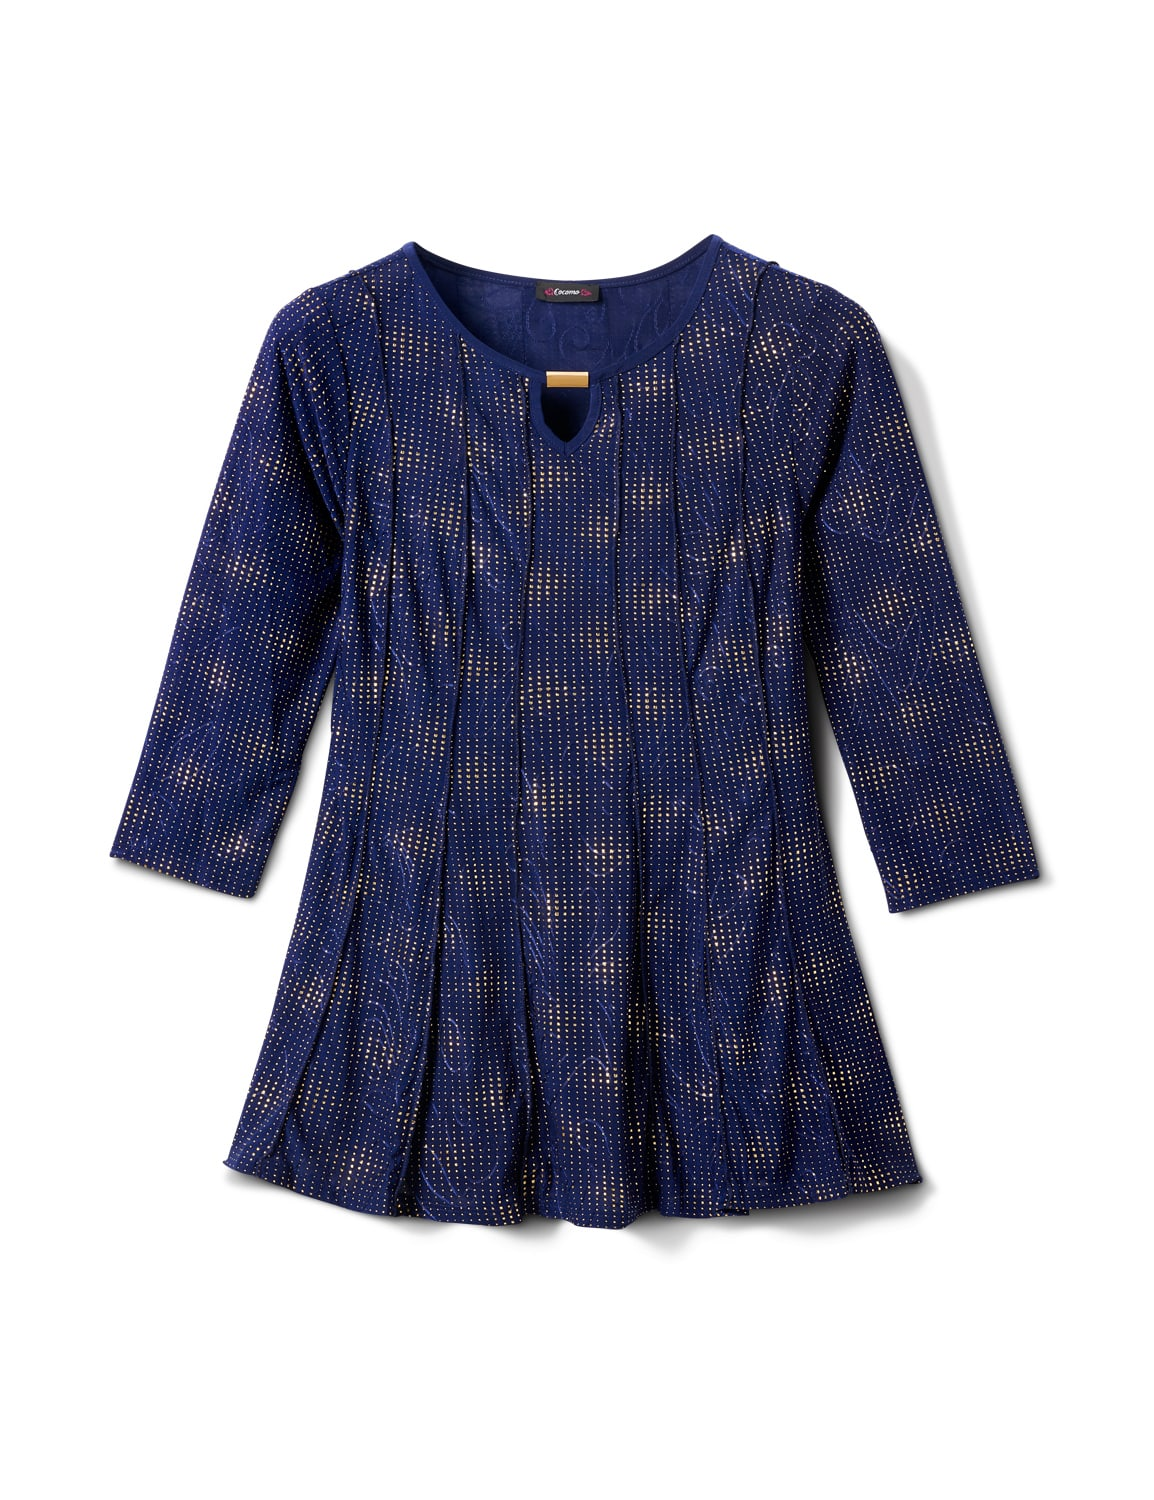 Gold Foil Fit And Flare Knit Top - Navy/Gold - Front